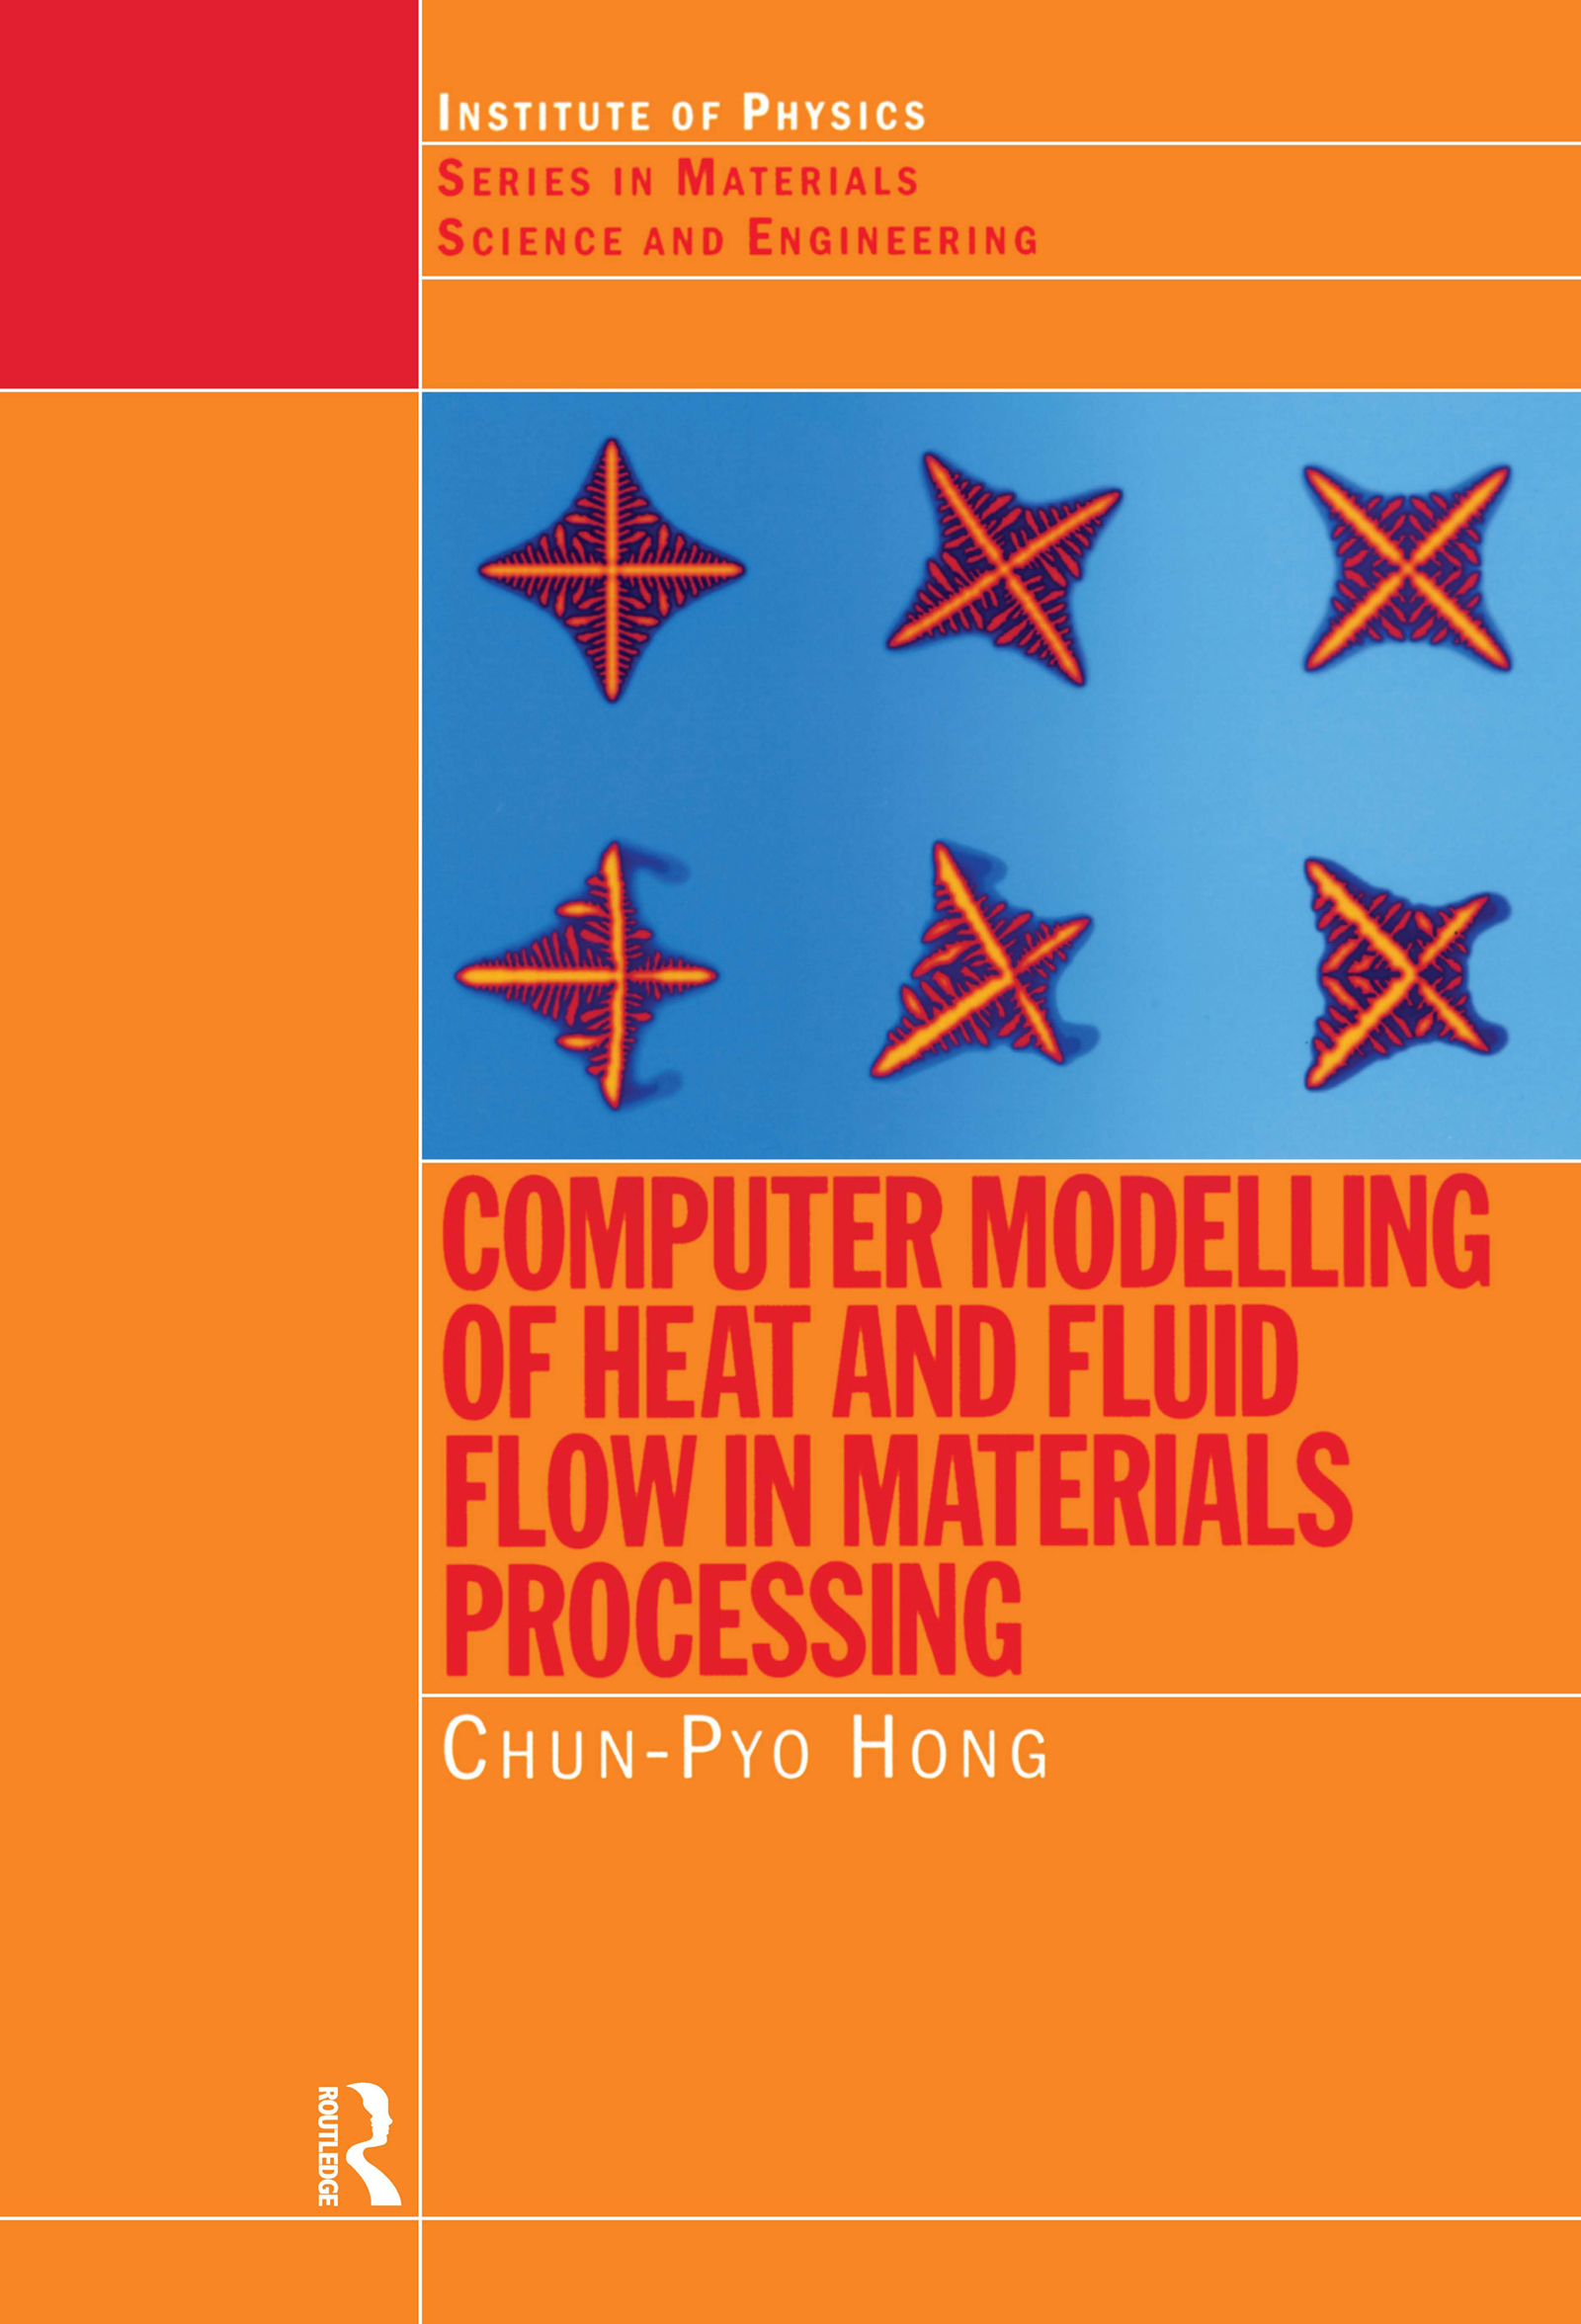 Computer Modelling of Heat and Fluid Flow in Materials Processing book cover